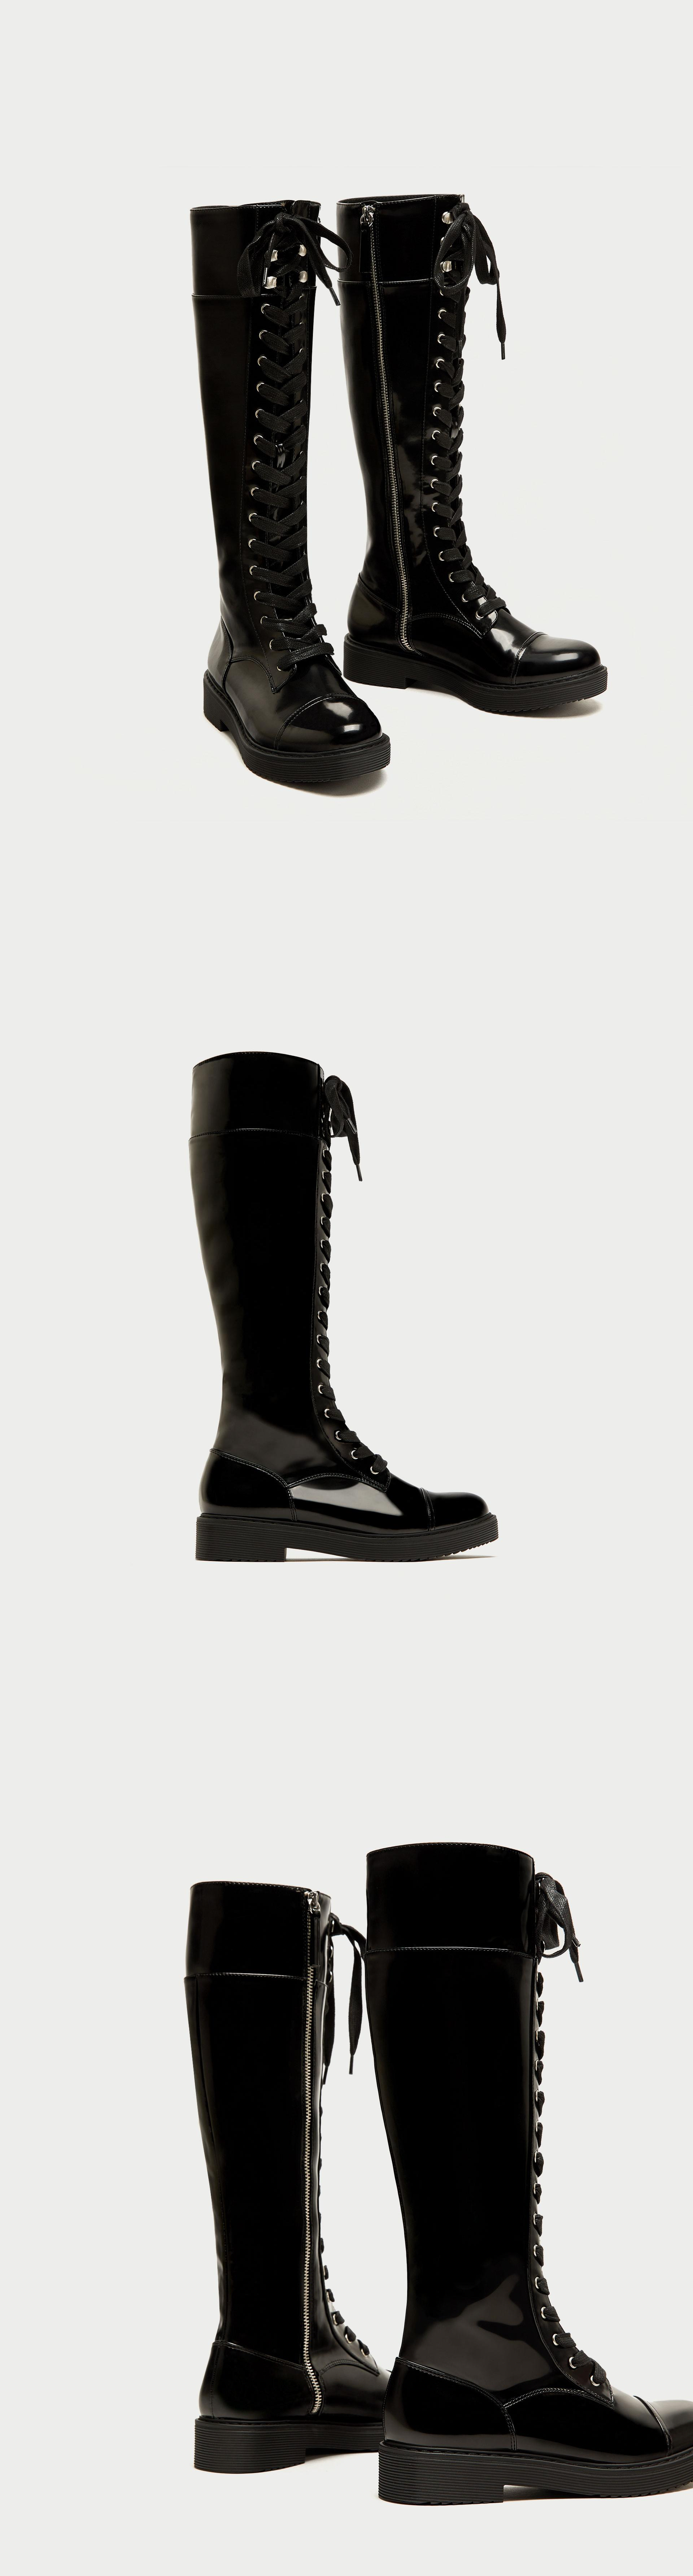 Lace Up Flat Over The Knee Boots 89 90 Usd Zara Flat Tall Military Boots In Black With Lace Up Fastening Over The Knee Boots Boots Zara Fashion 2017